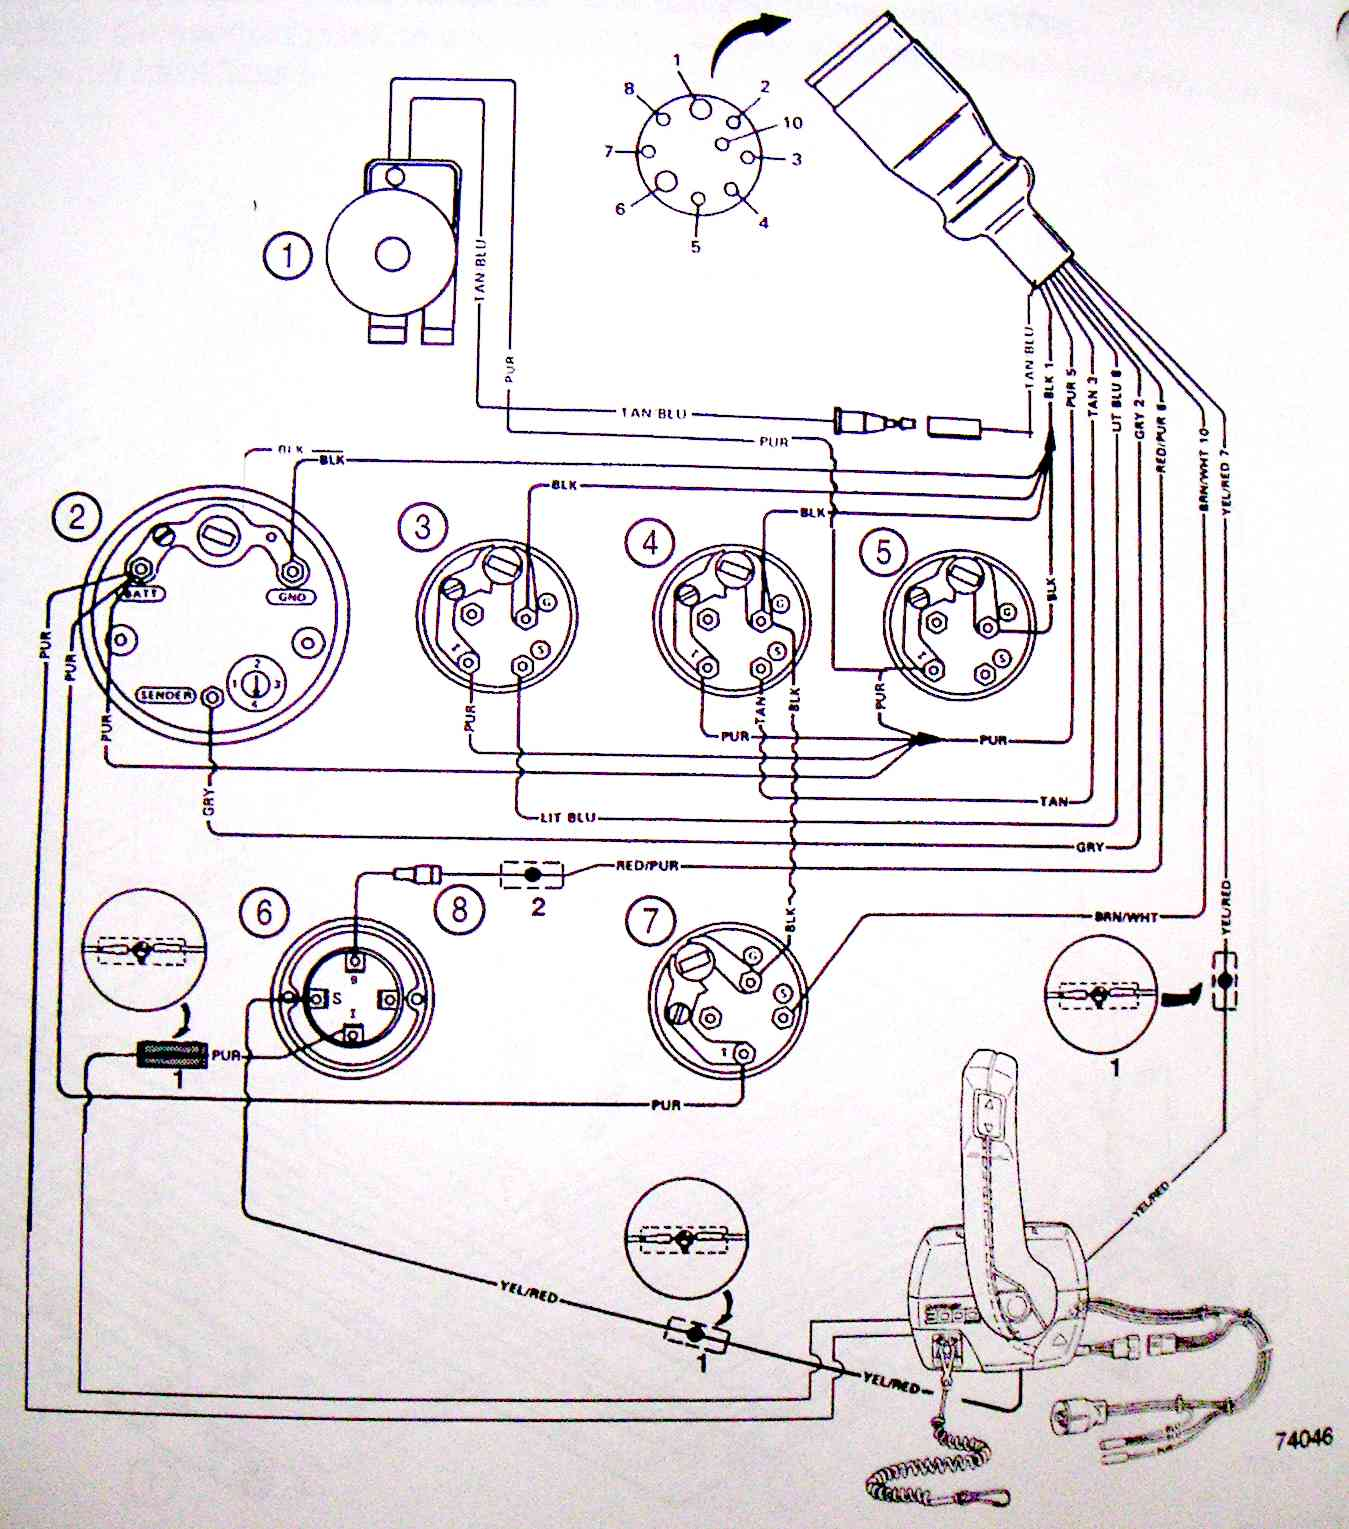 BoatHarness74046 yamaha outboard motor wiring diagrams the wiring diagram volvo penta wiring harness diagram at highcare.asia